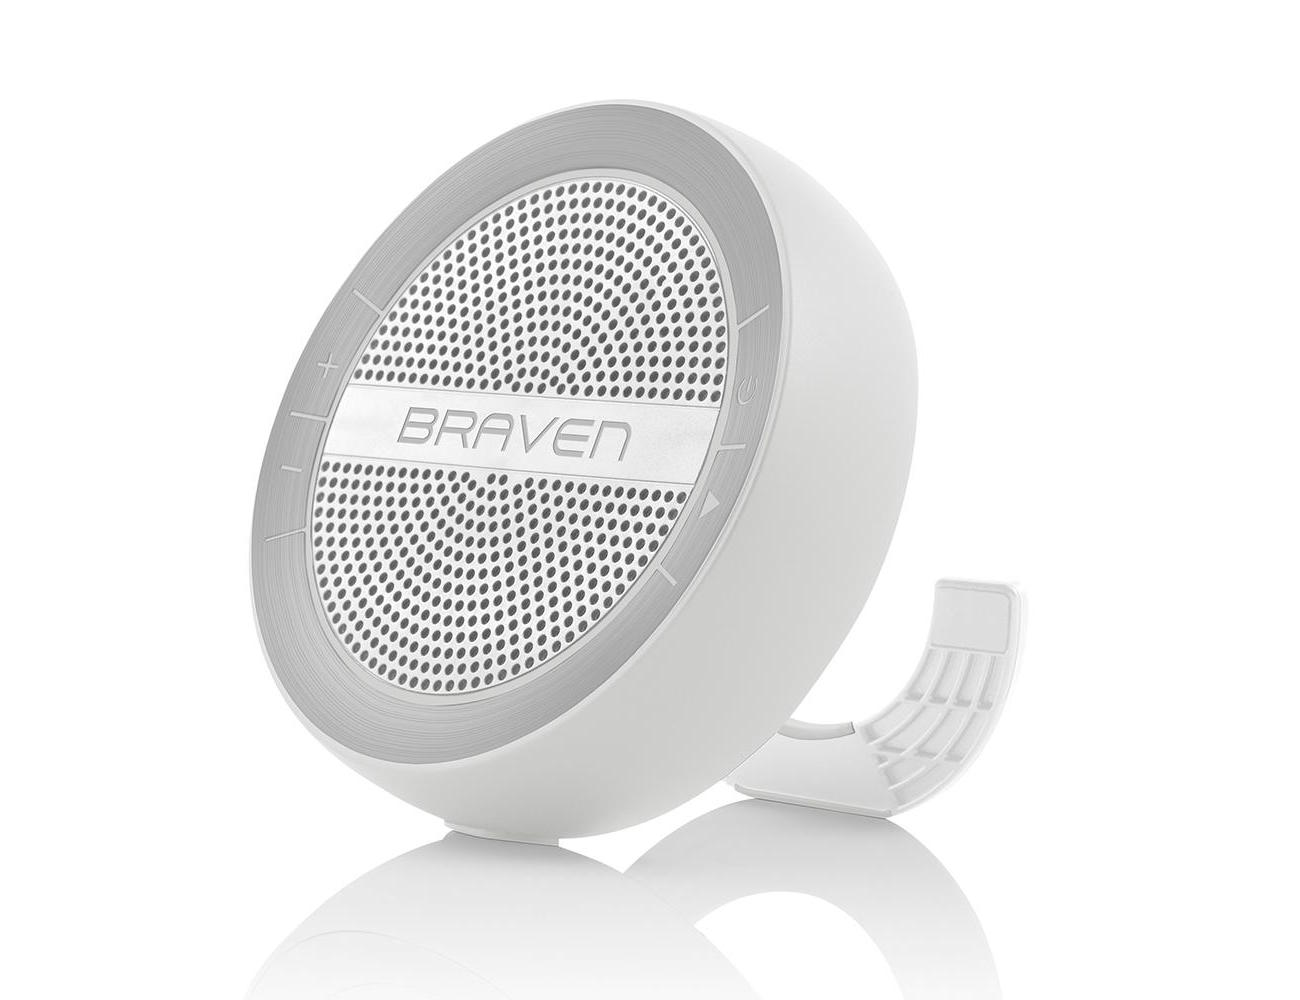 braven-mira-portable-wireless-weatherproof-speaker-04